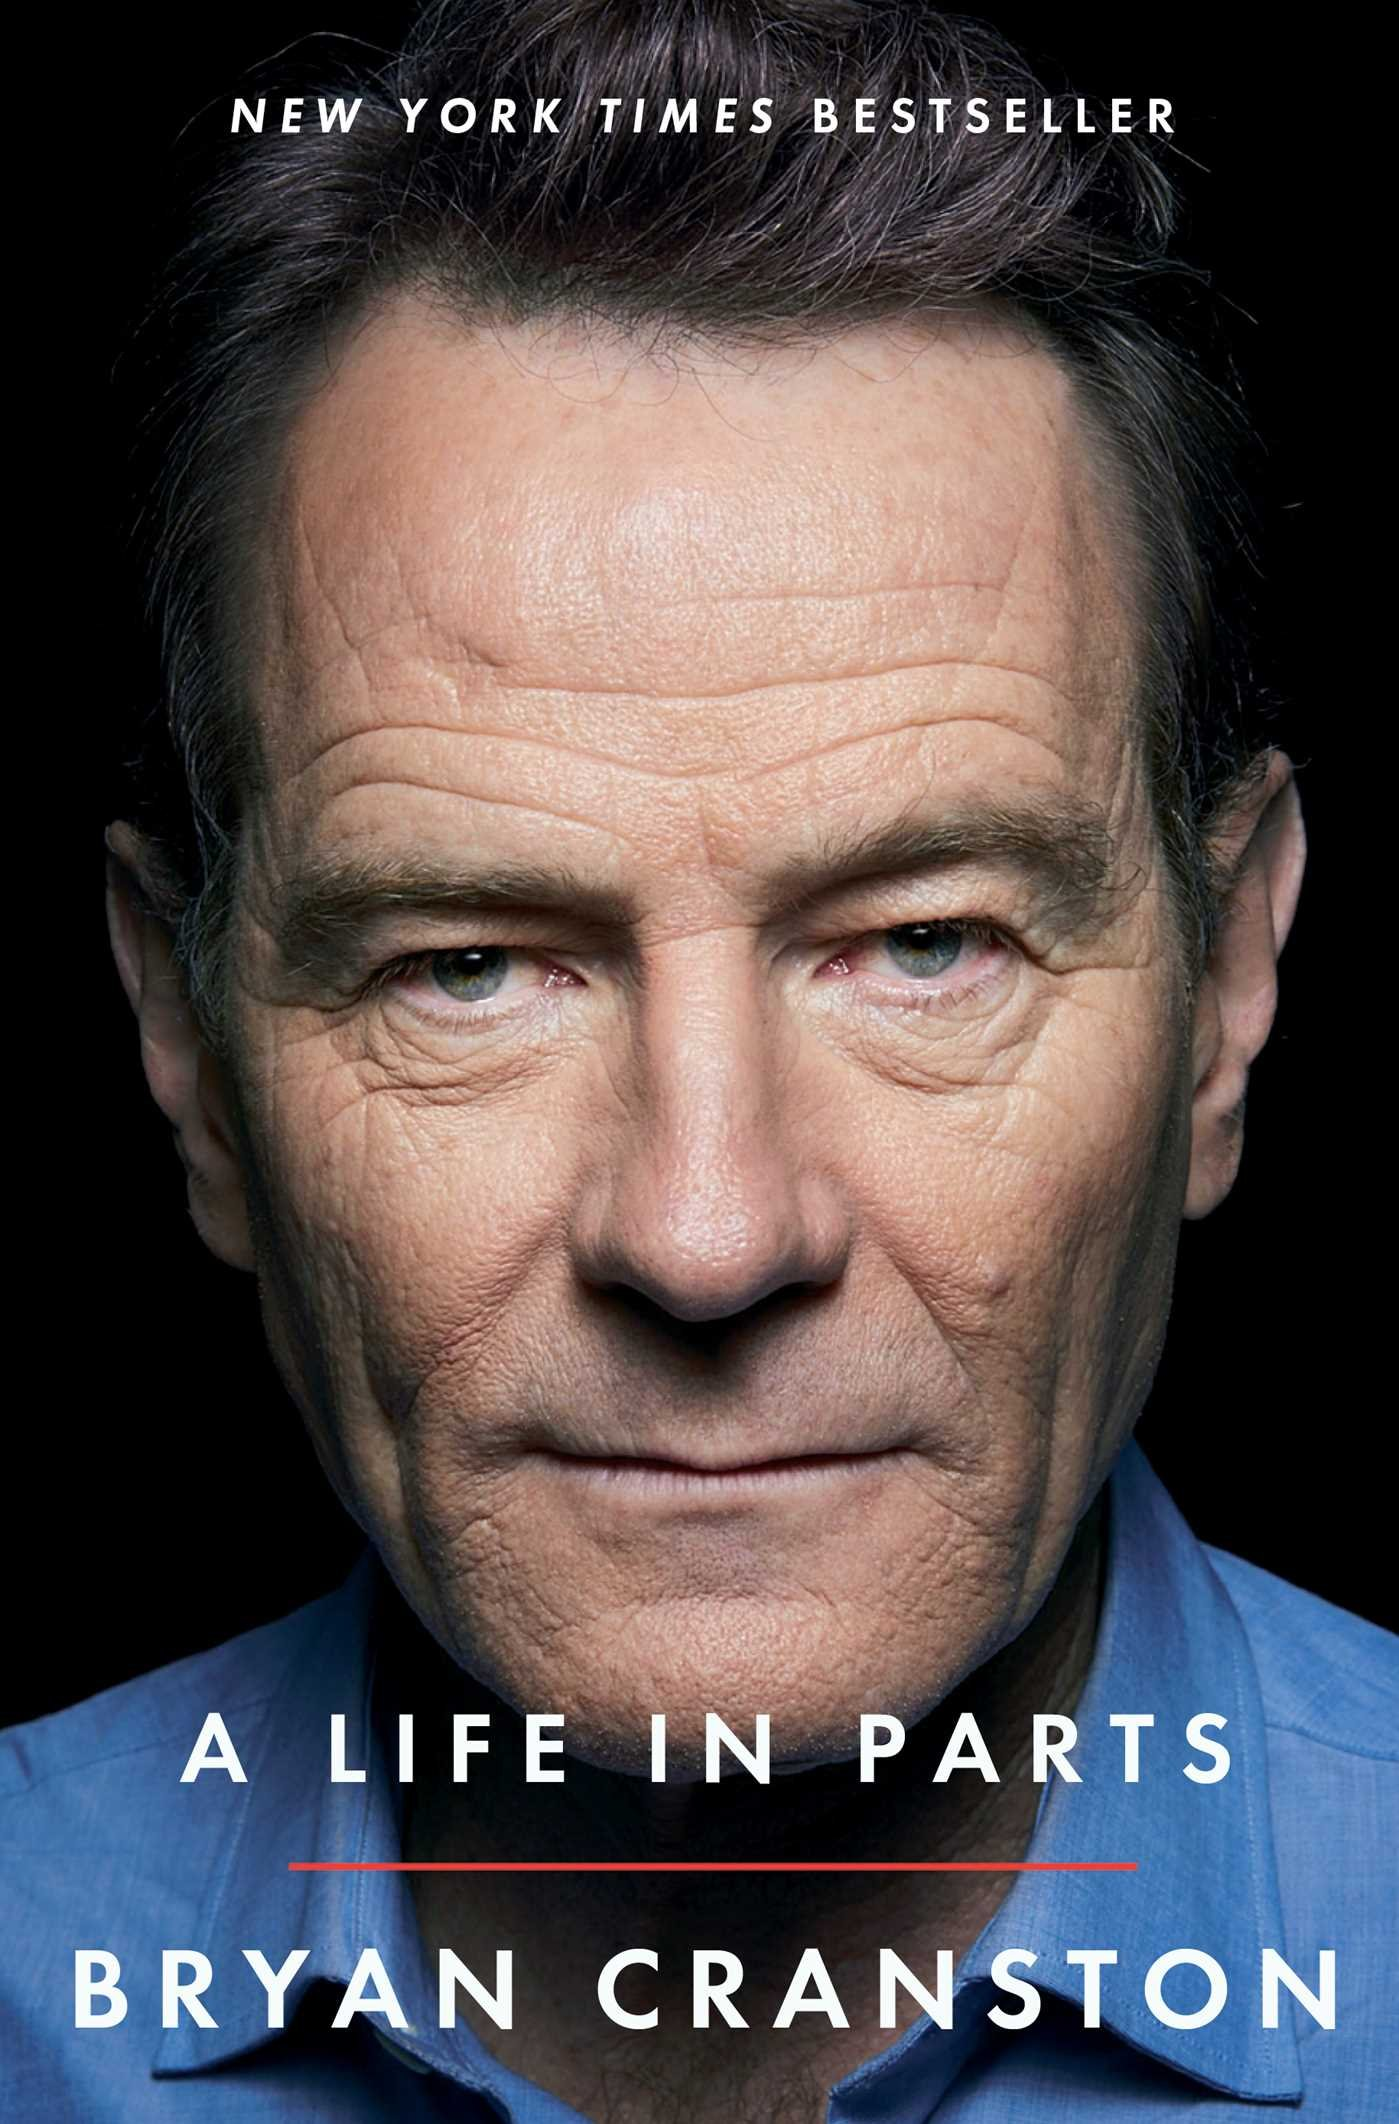 Image result for bryan cranston a life in parts